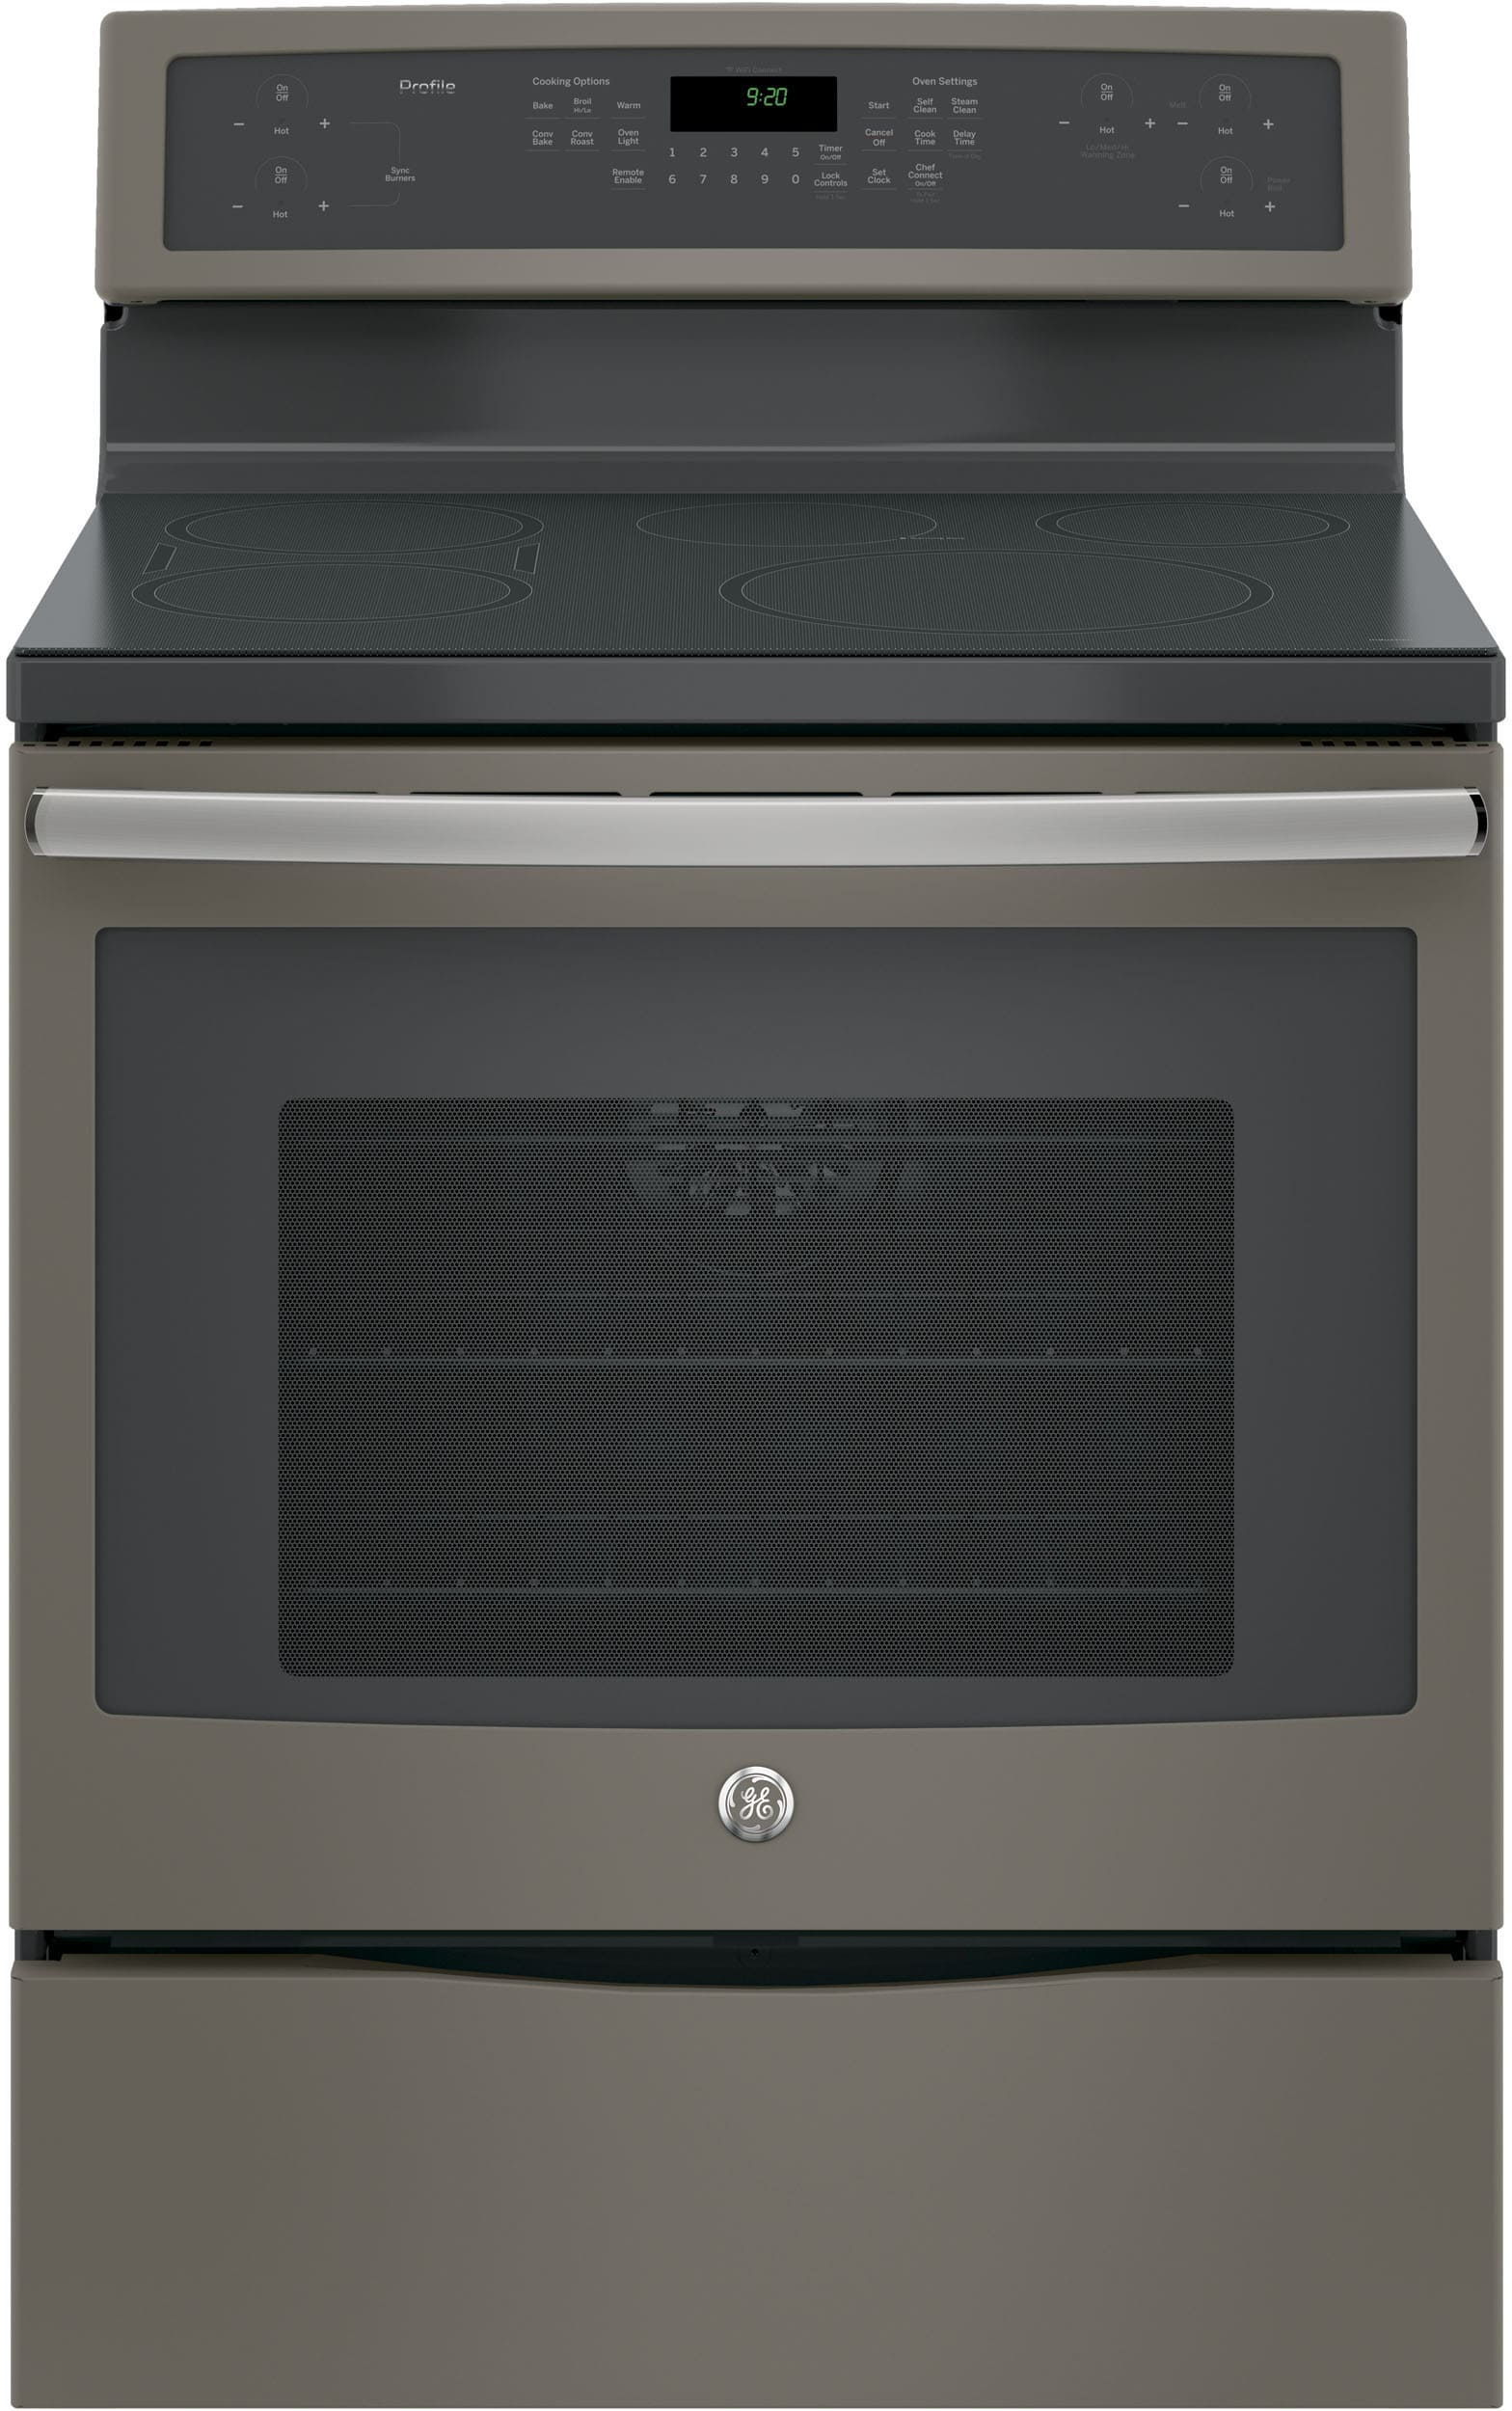 Ge Phb920ejes 30 Inch Freestanding Induction Range With